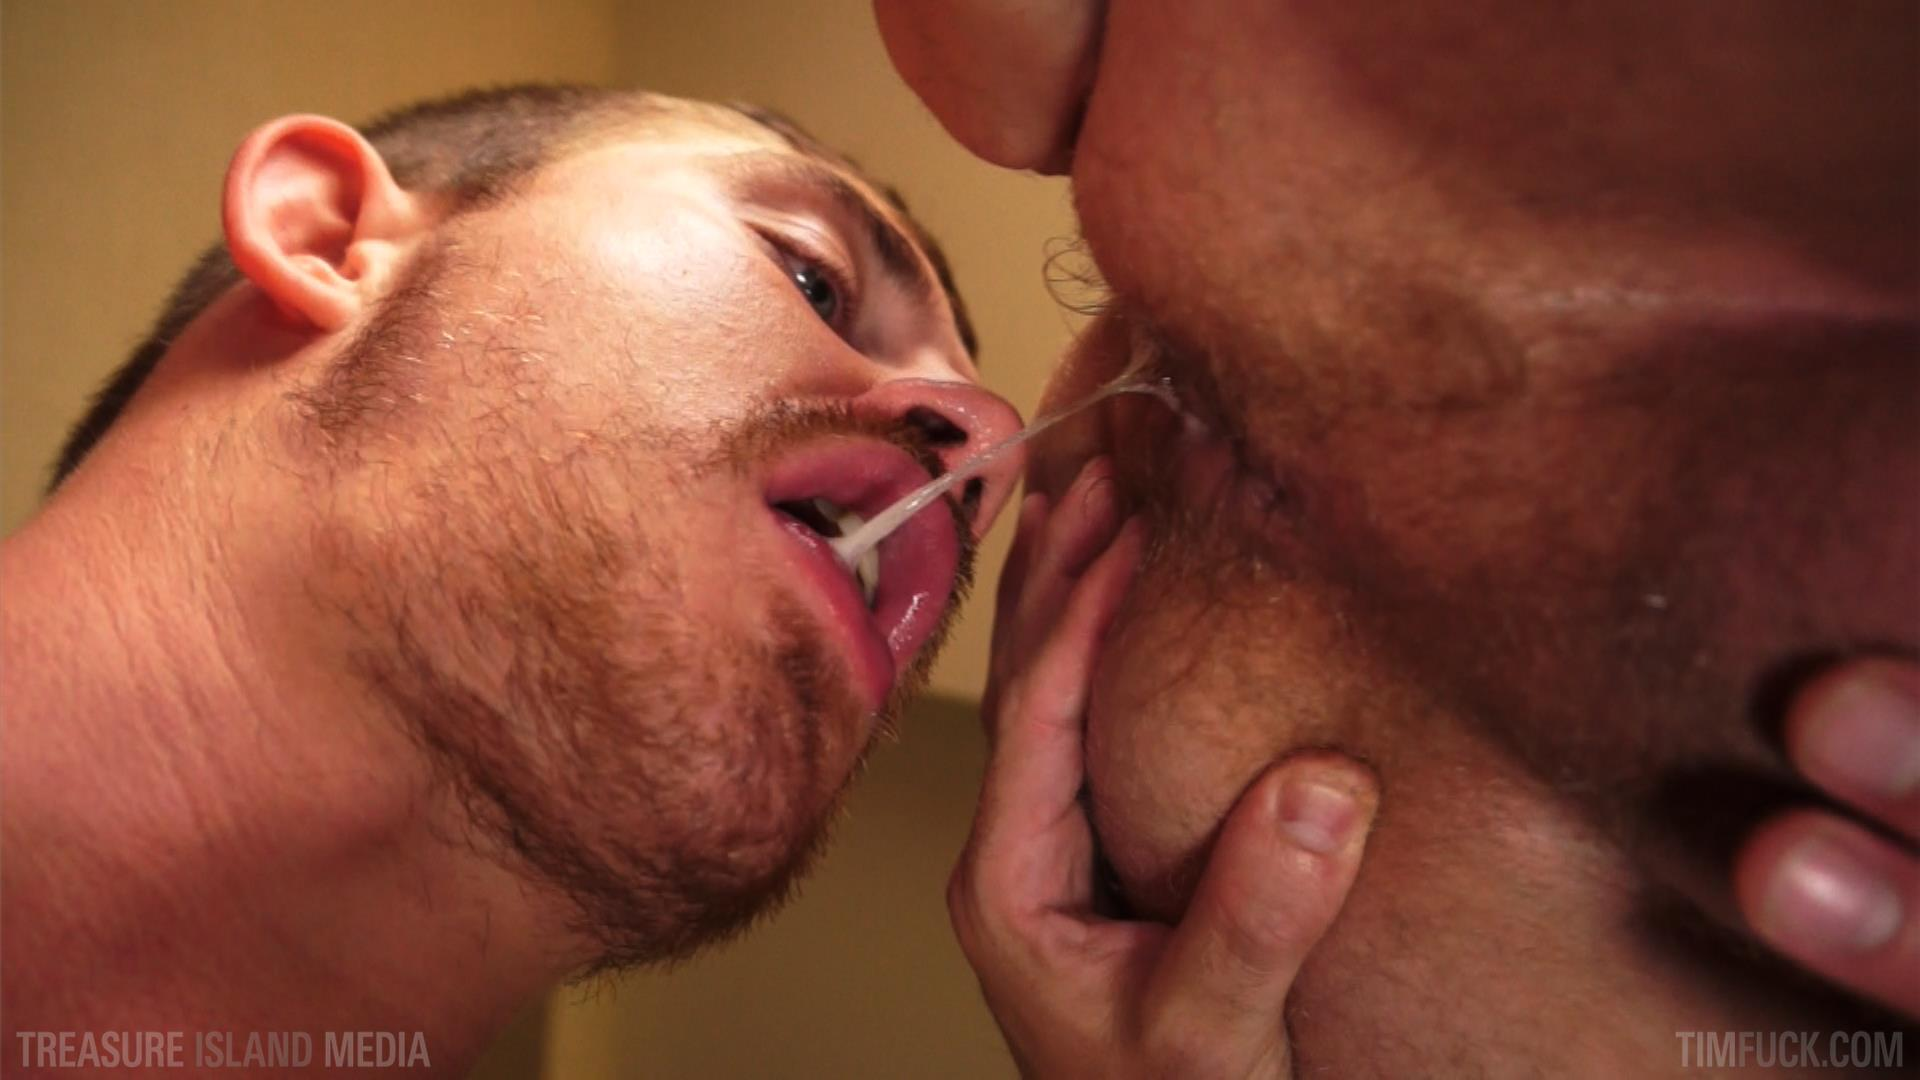 Gay sex bucket loads of cum hot public gay